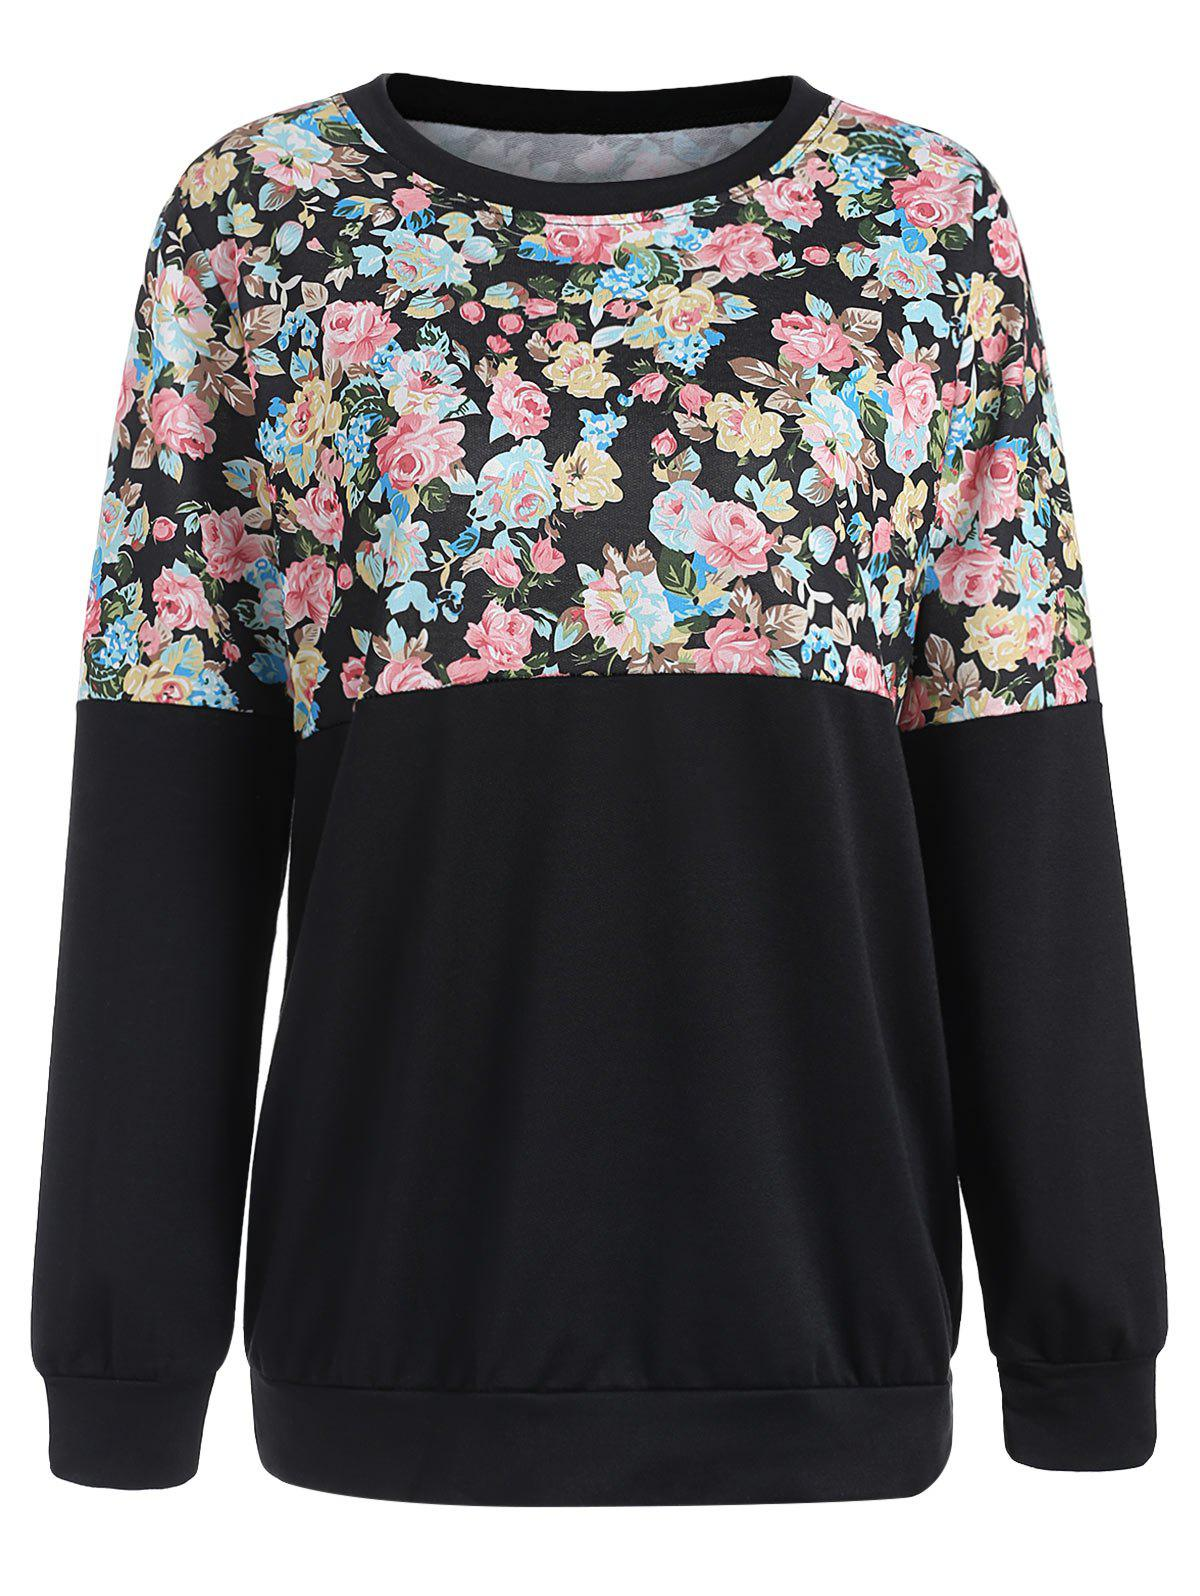 Affordable Floral Print Color Block Sweatshirt